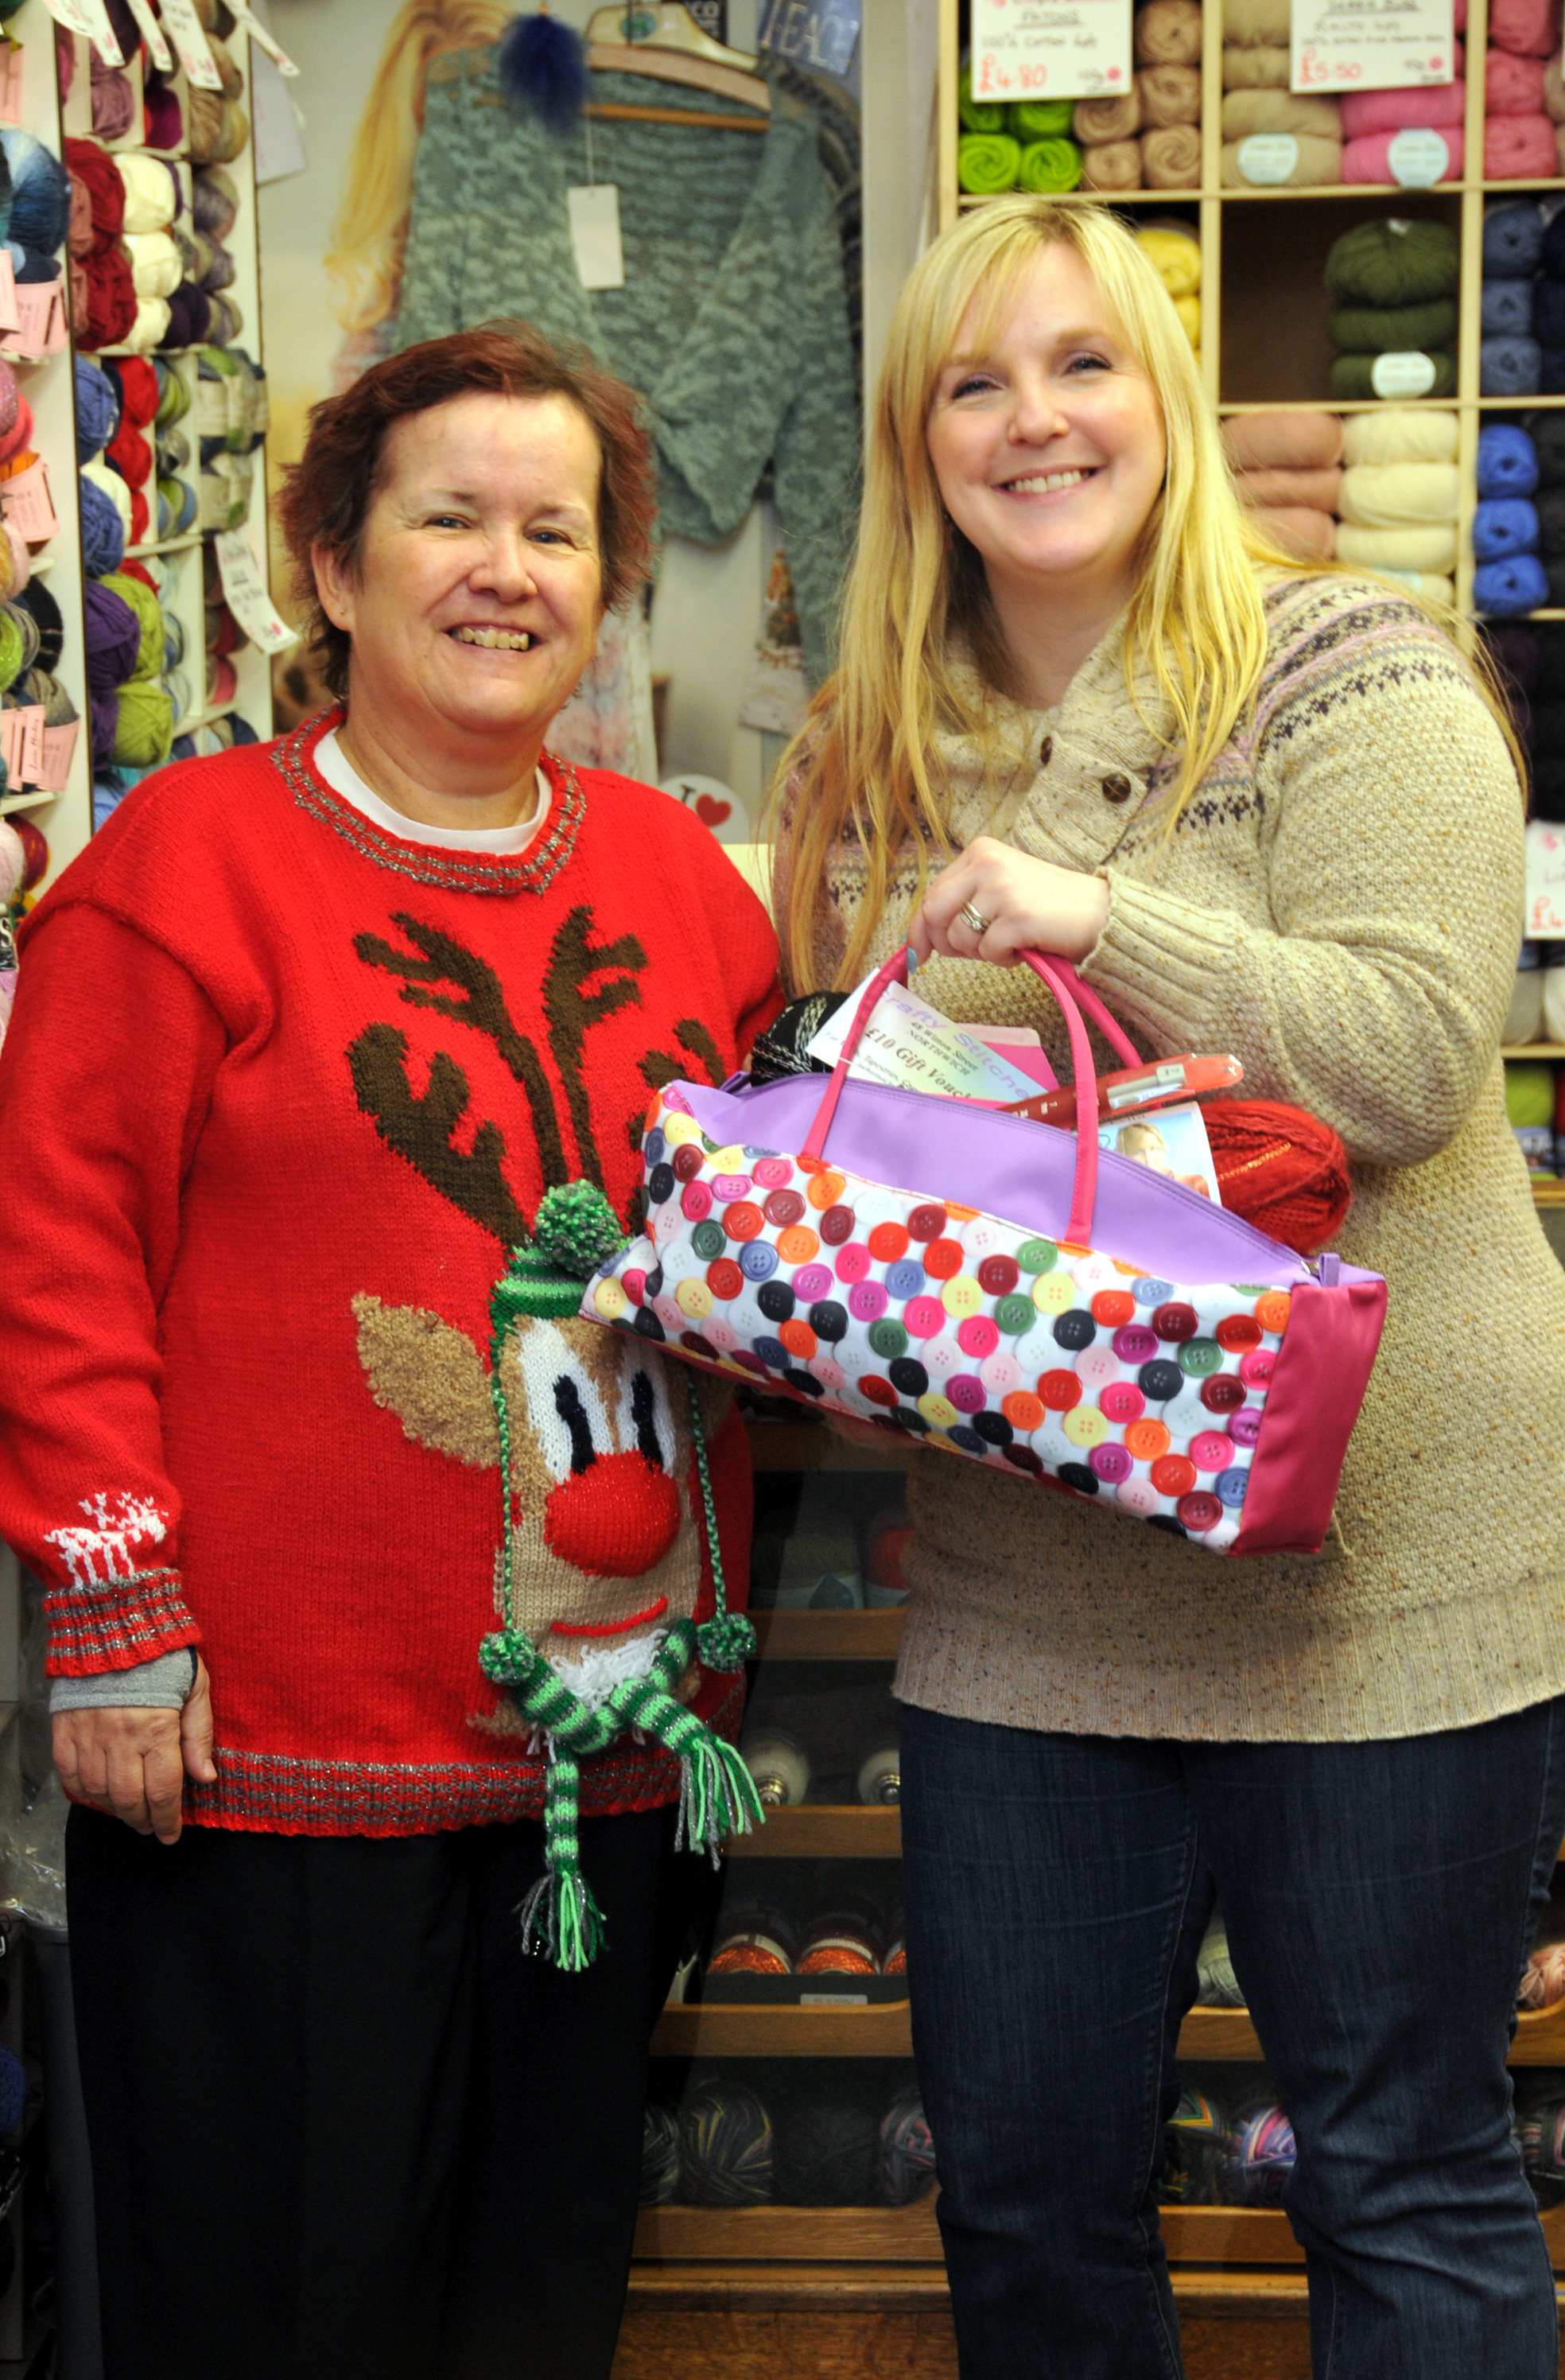 Sandra Graham, wearing her winning Christmas jumper, is awarded her prize of a £10 gift voucher, knitting bag and goodies worth £40 by Louise Hough, from Crafty Stitches.